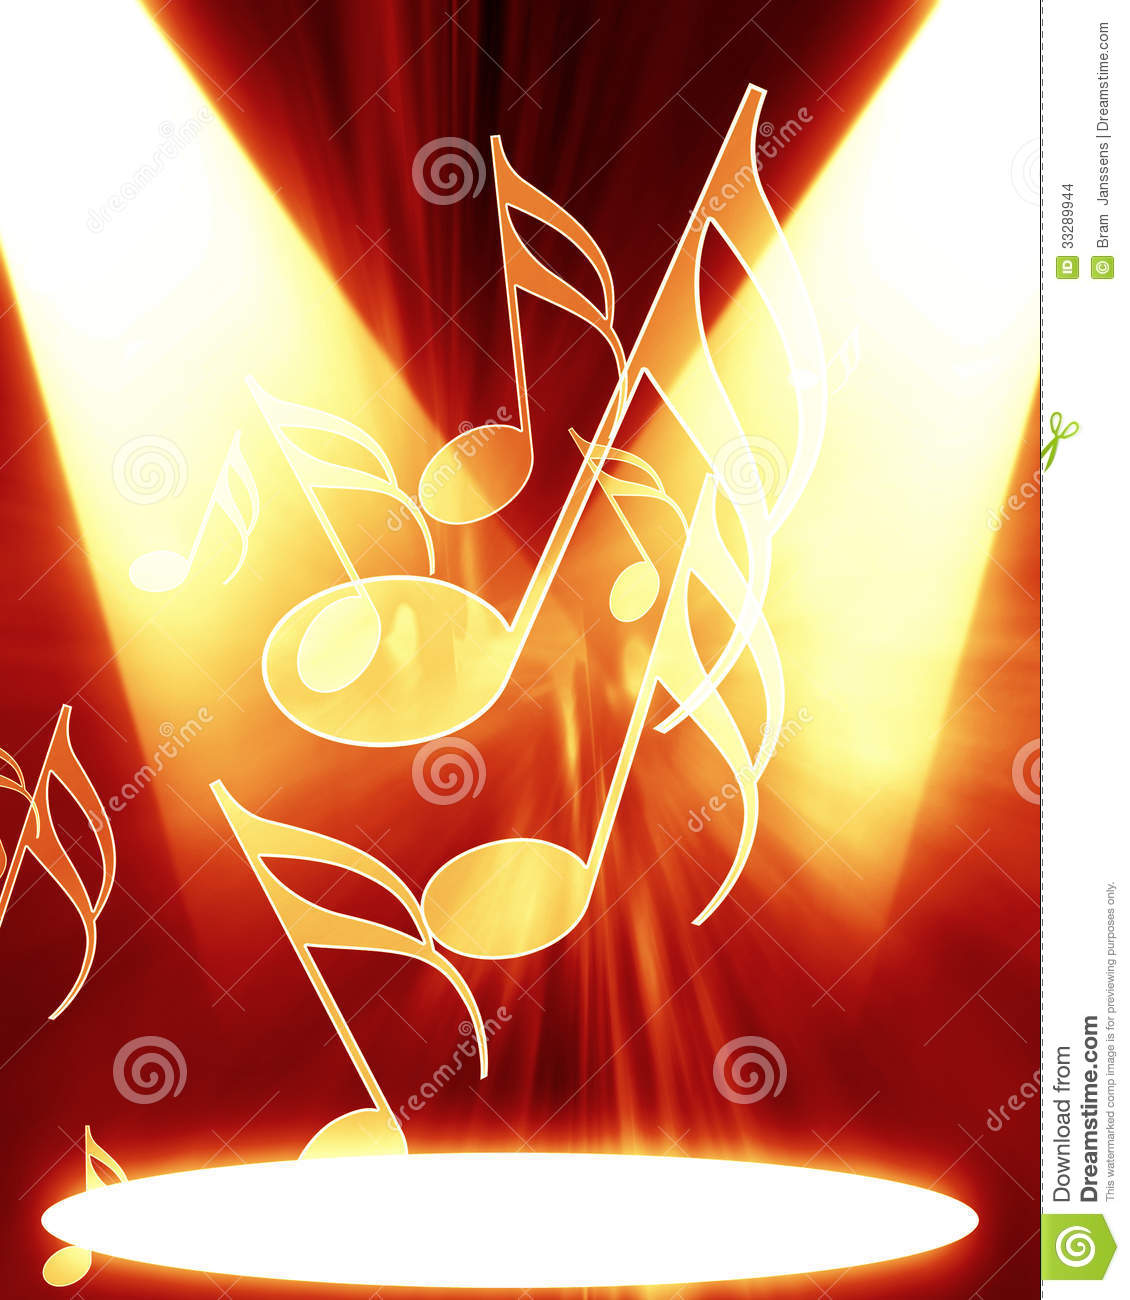 Music notes stock illustration. Illustration of party ...